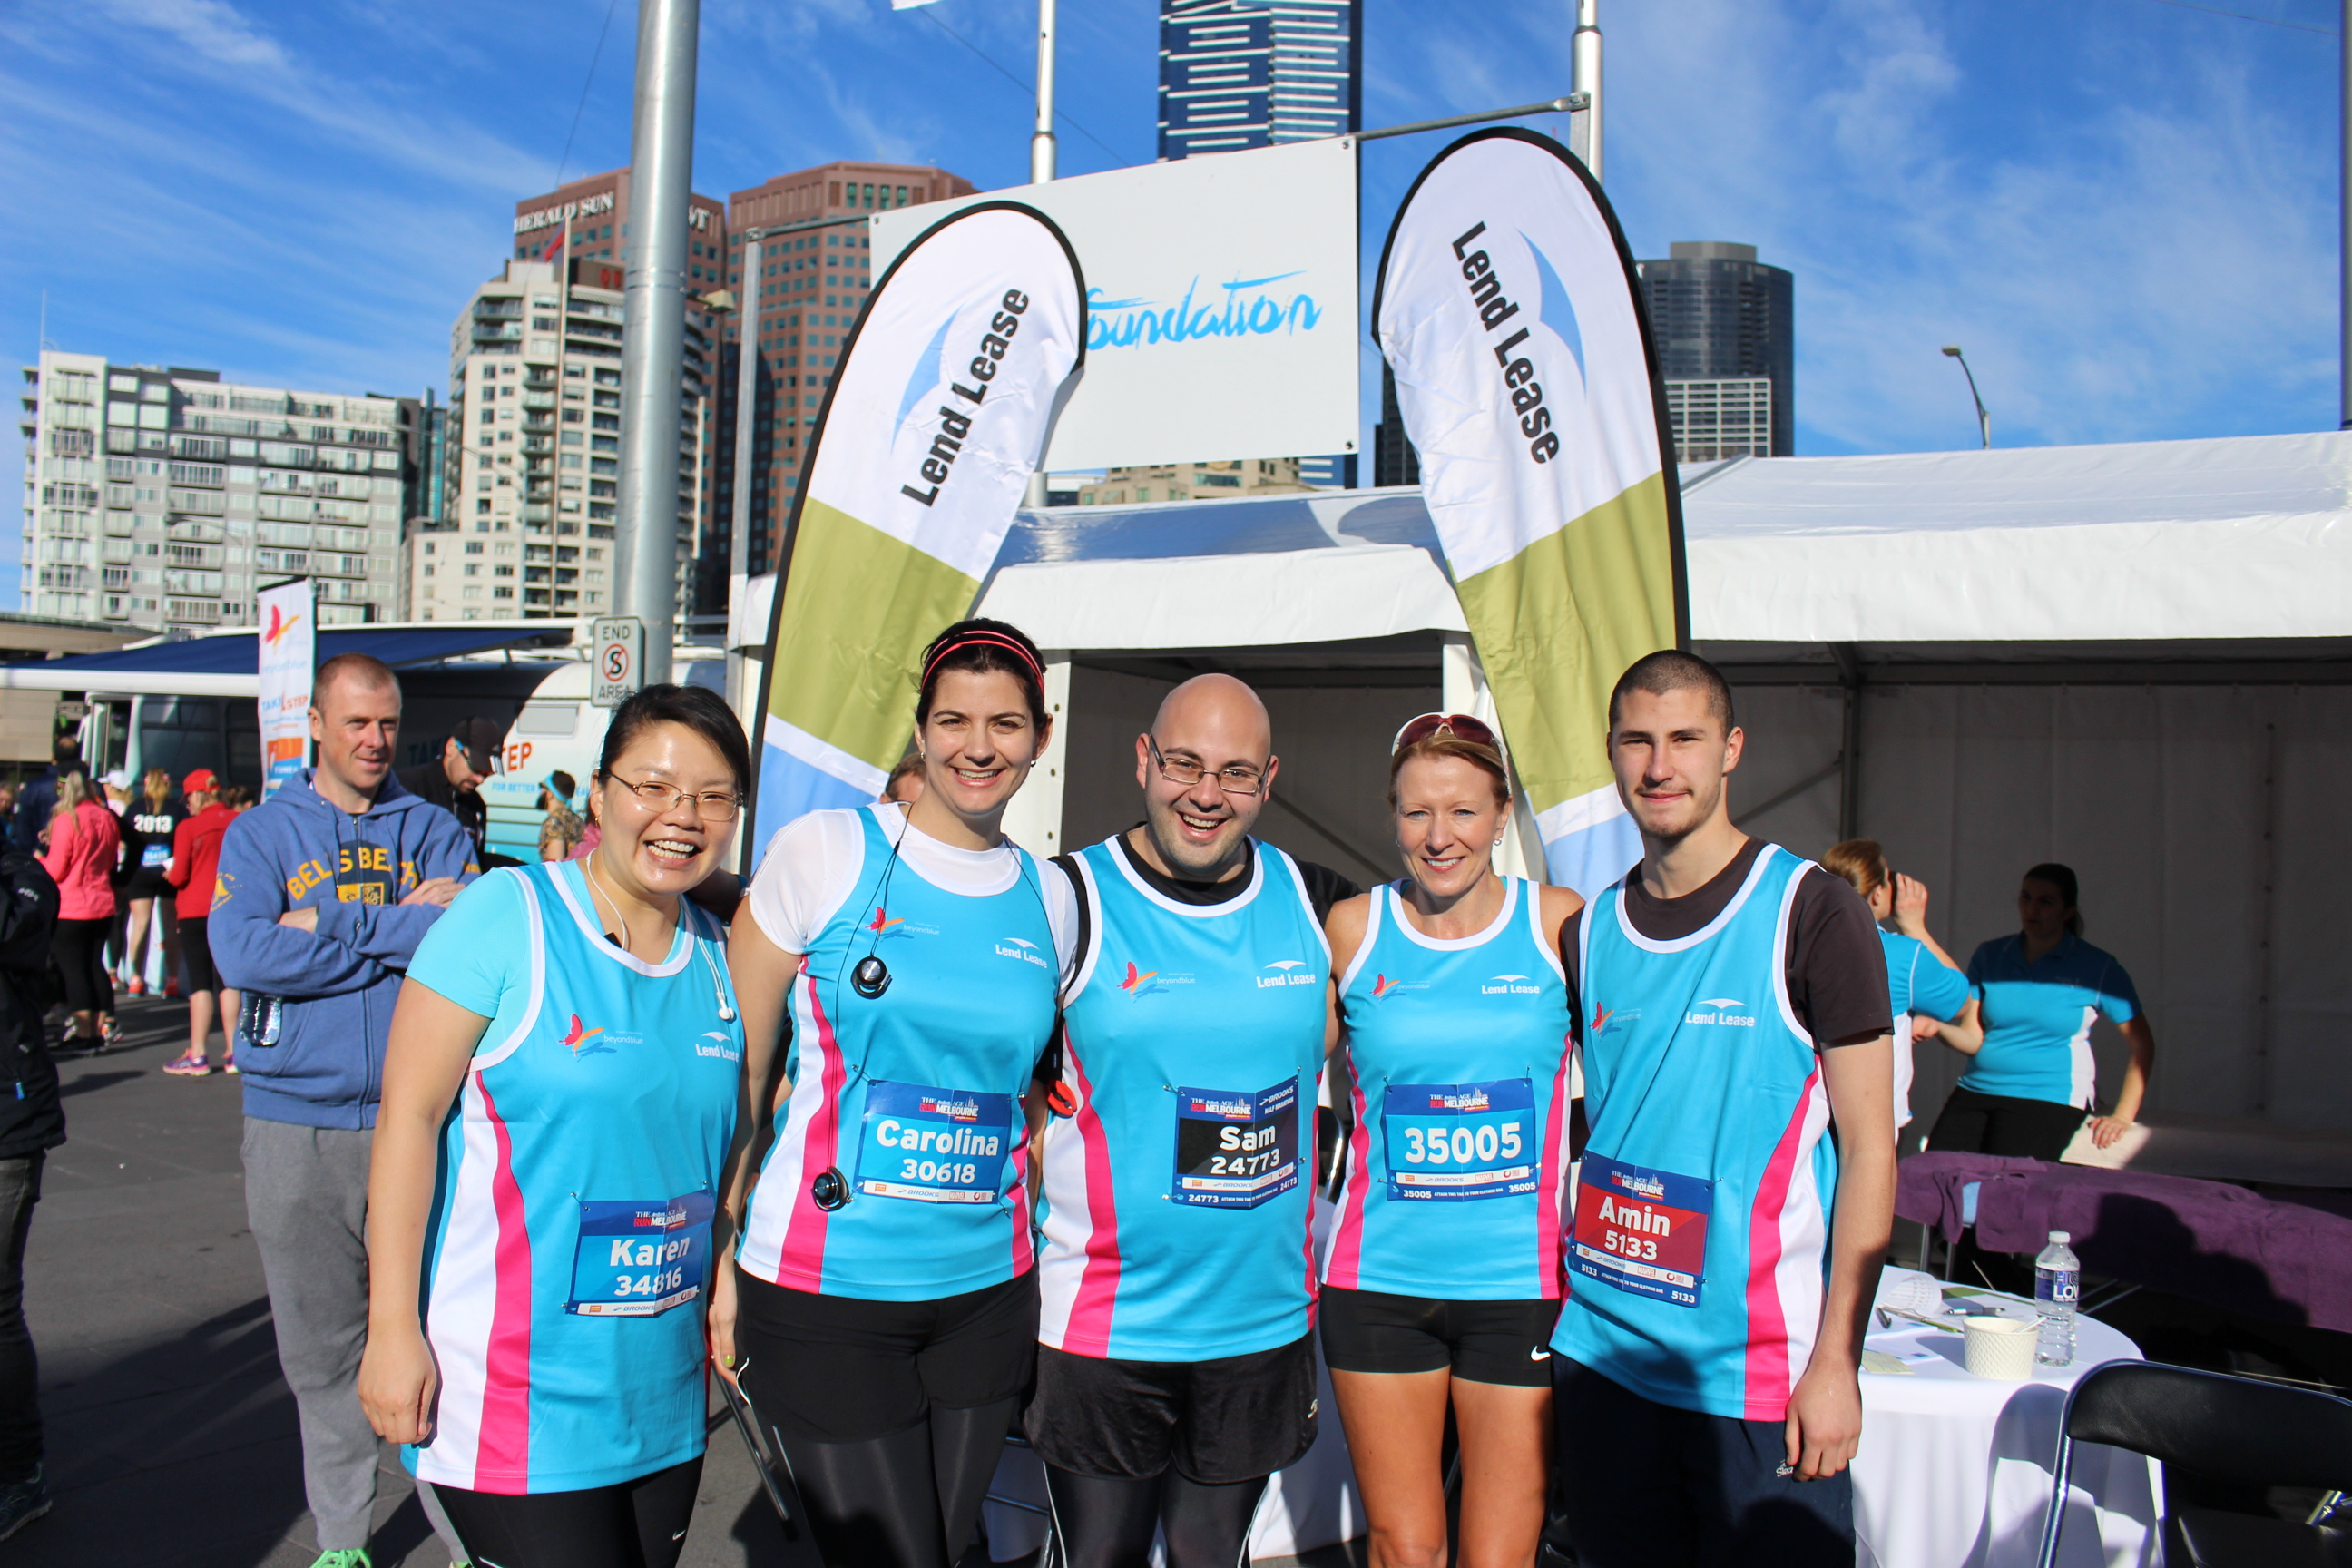 Beyond Blue supporters from the LendLease team ready to take on the 5km.